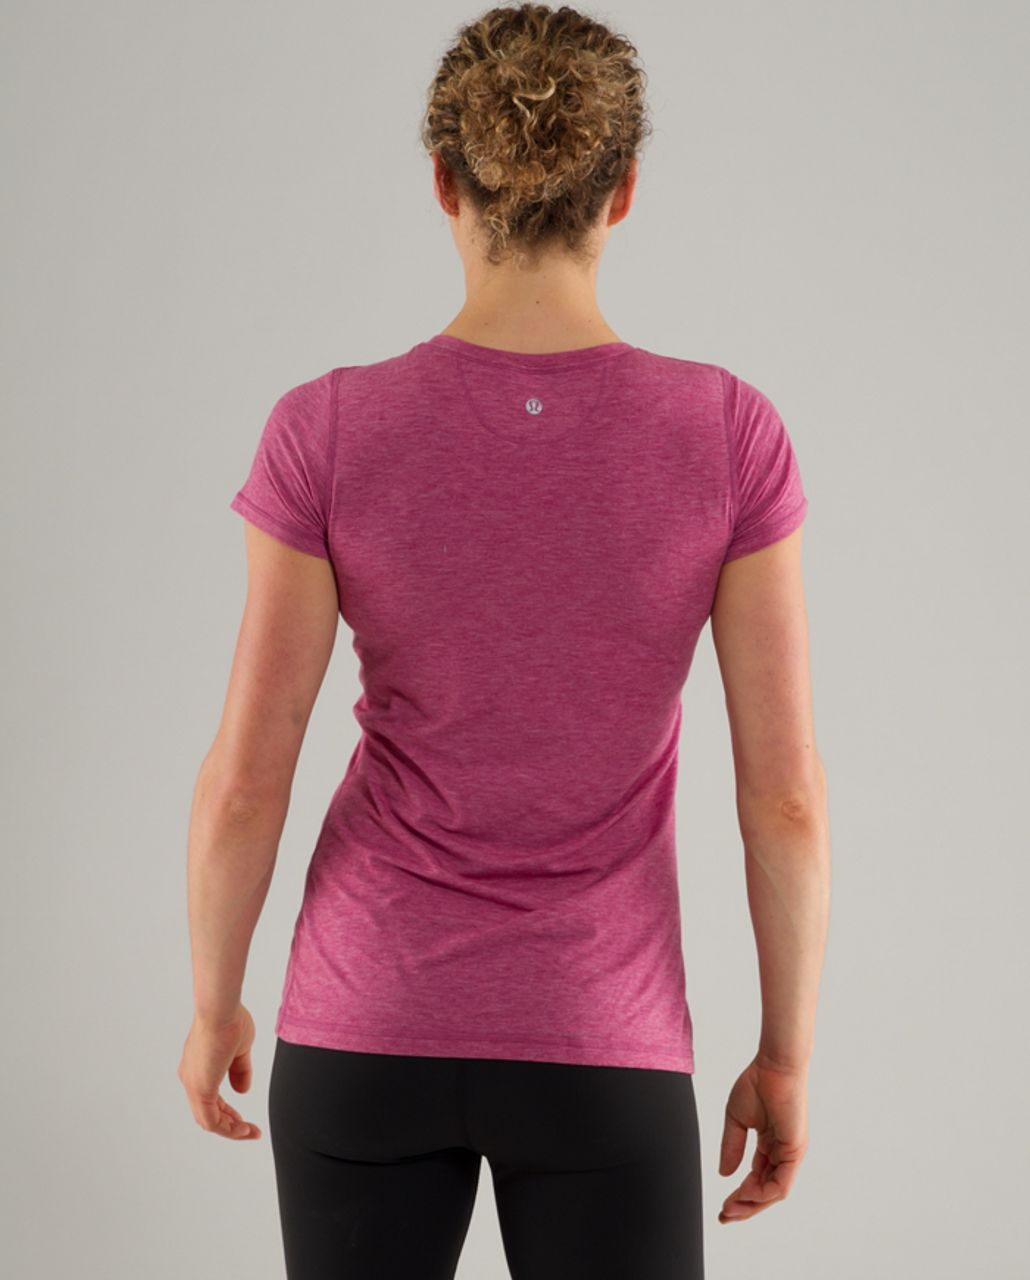 Lululemon Lively Crewneck Tee *Vitasea - Heathered Raspberry